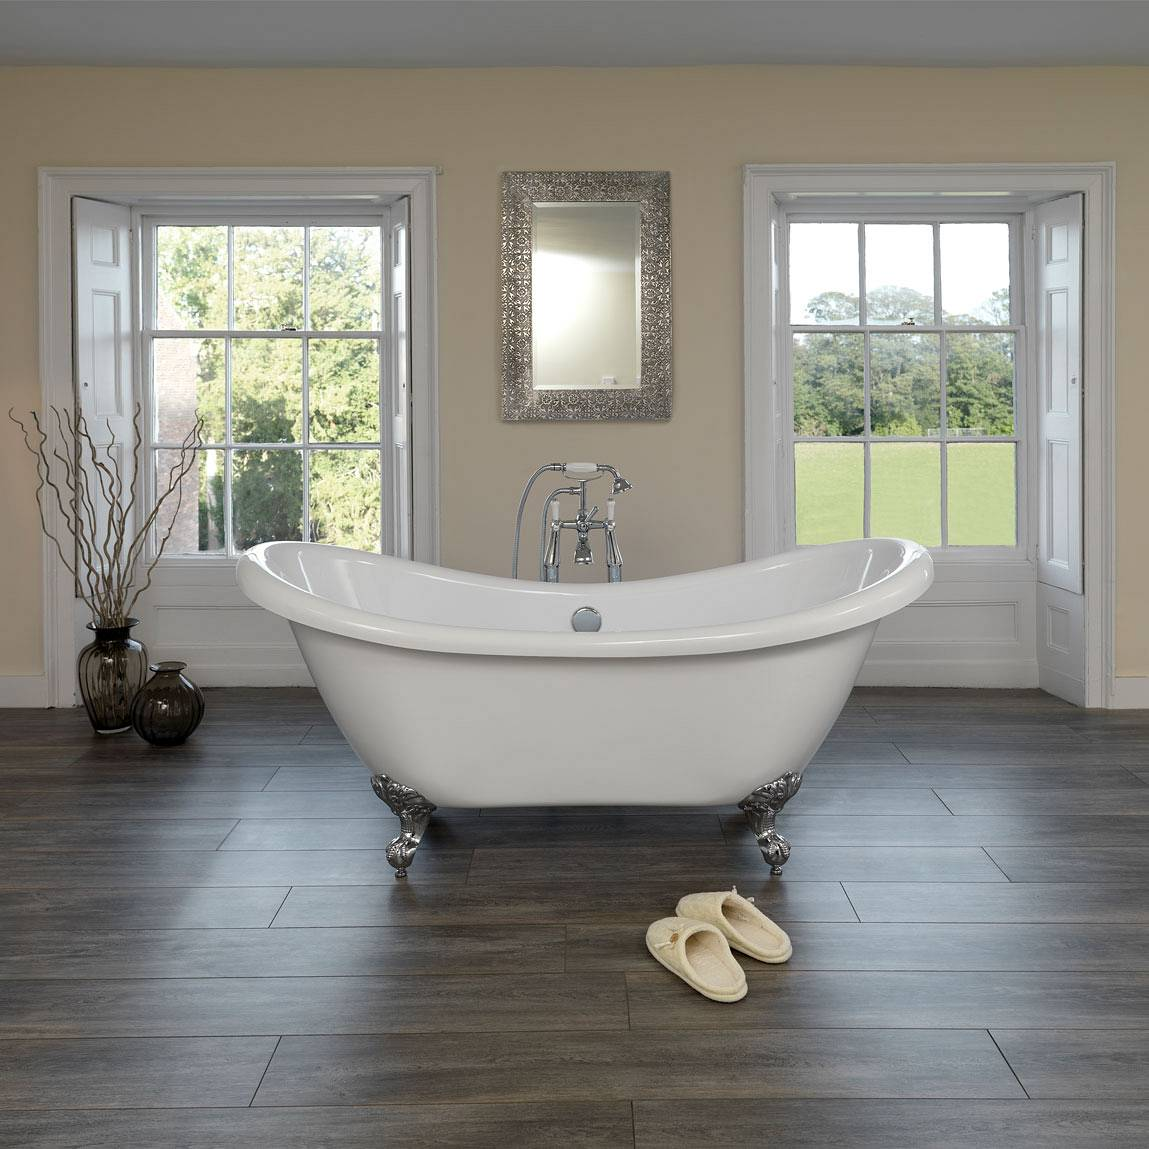 Top two roll top baths for a transitional bathroom design for Best bathroom designs